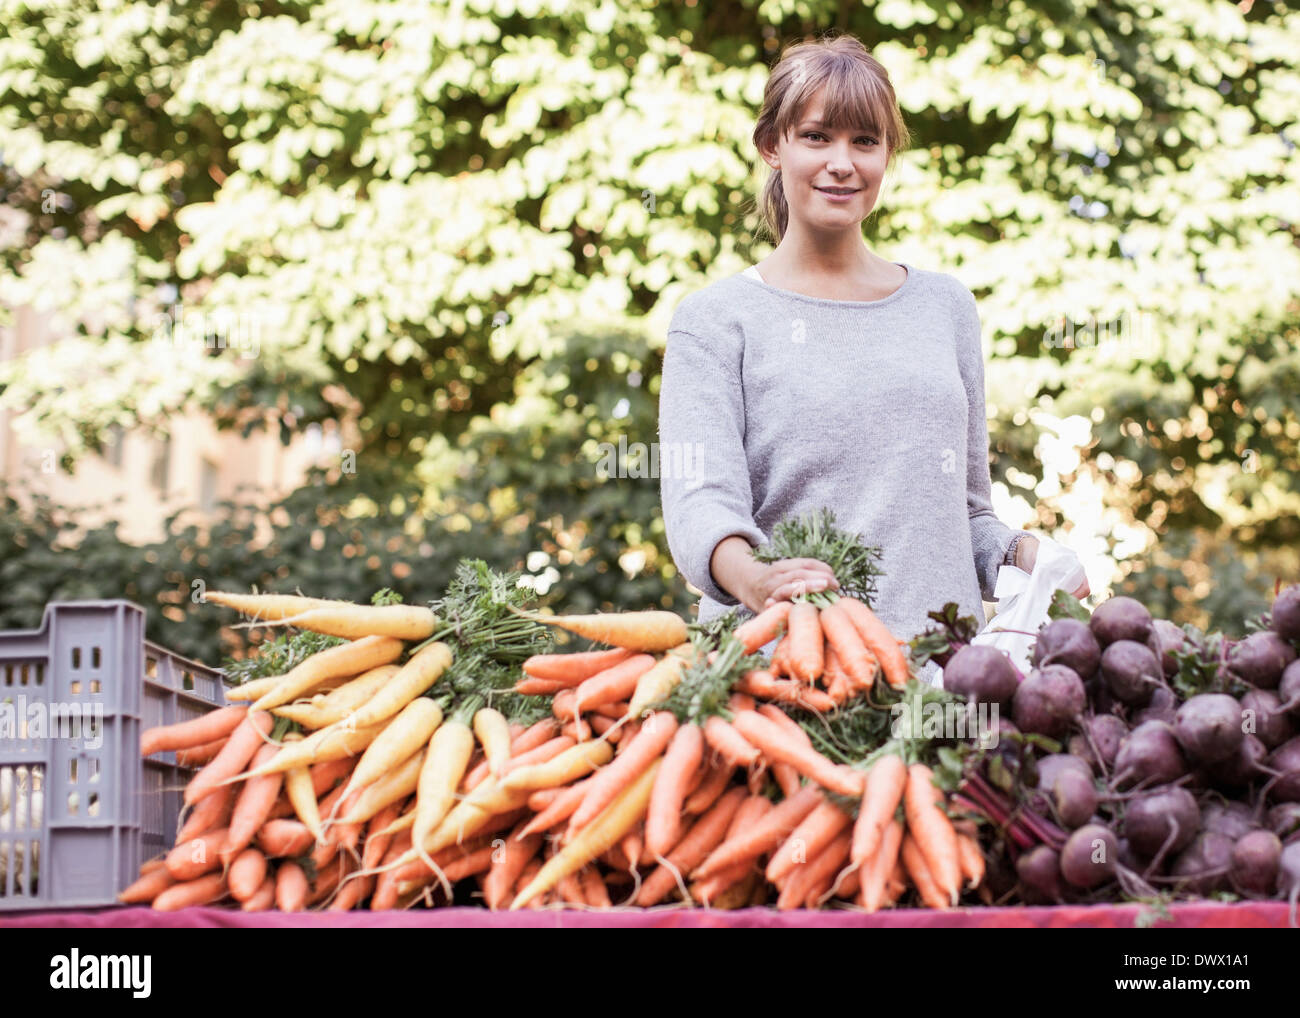 Portrait of smiling female vendor selling vegetables at market stall - Stock Image